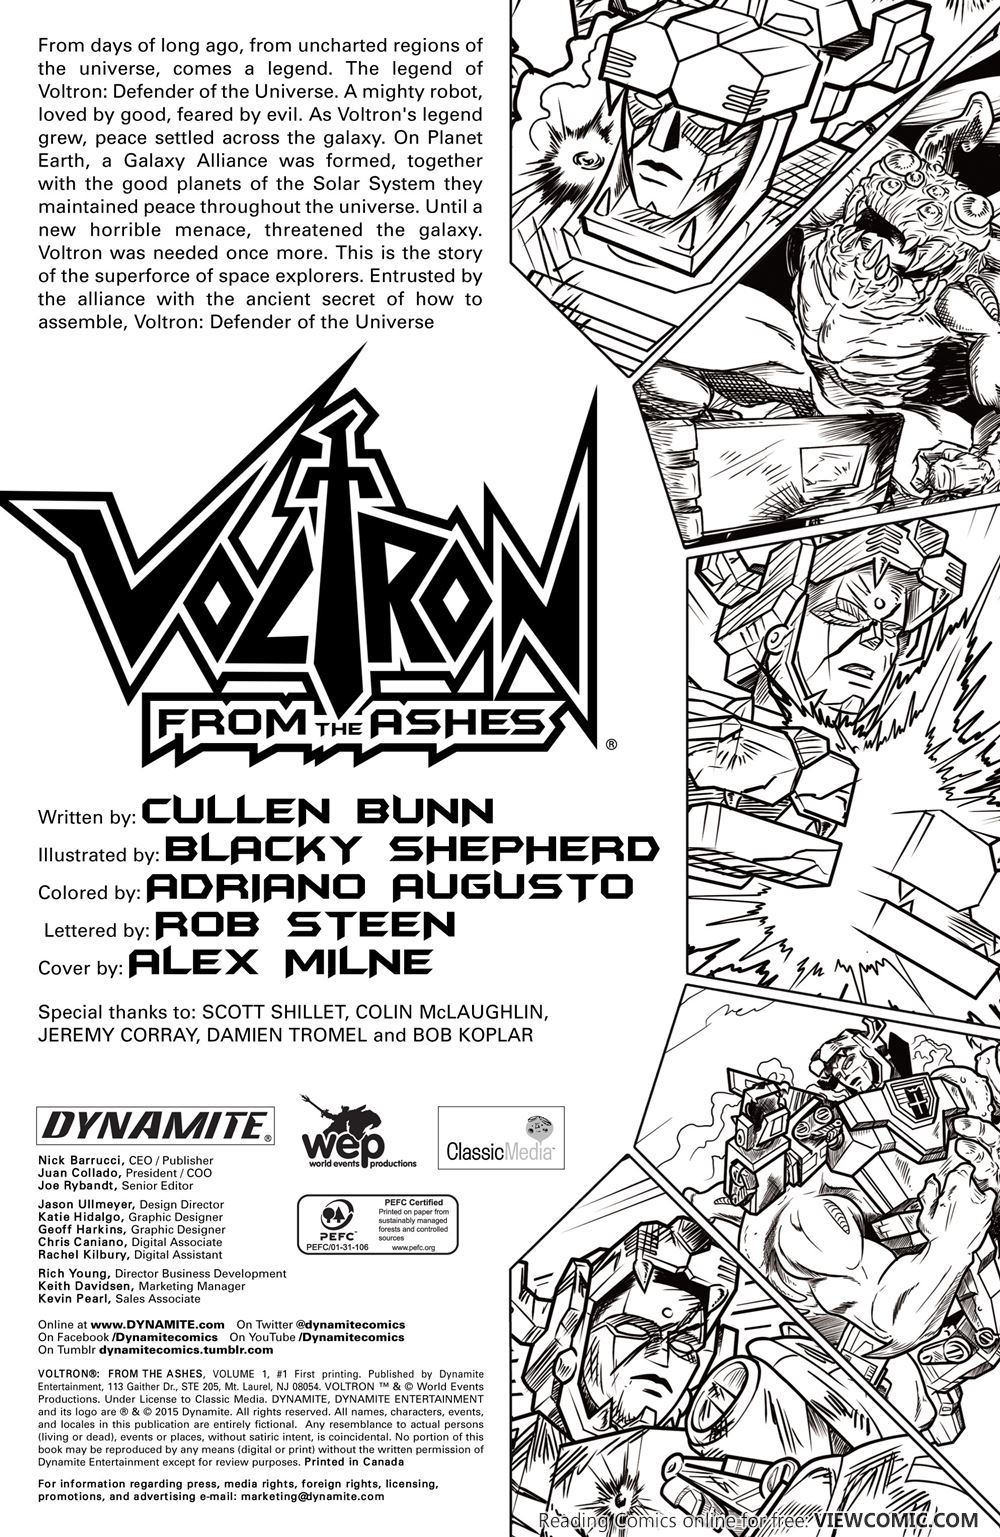 voltron u2013 from the ashes 001 2015 u2026 u2026 u2026 viewcomic reading comics